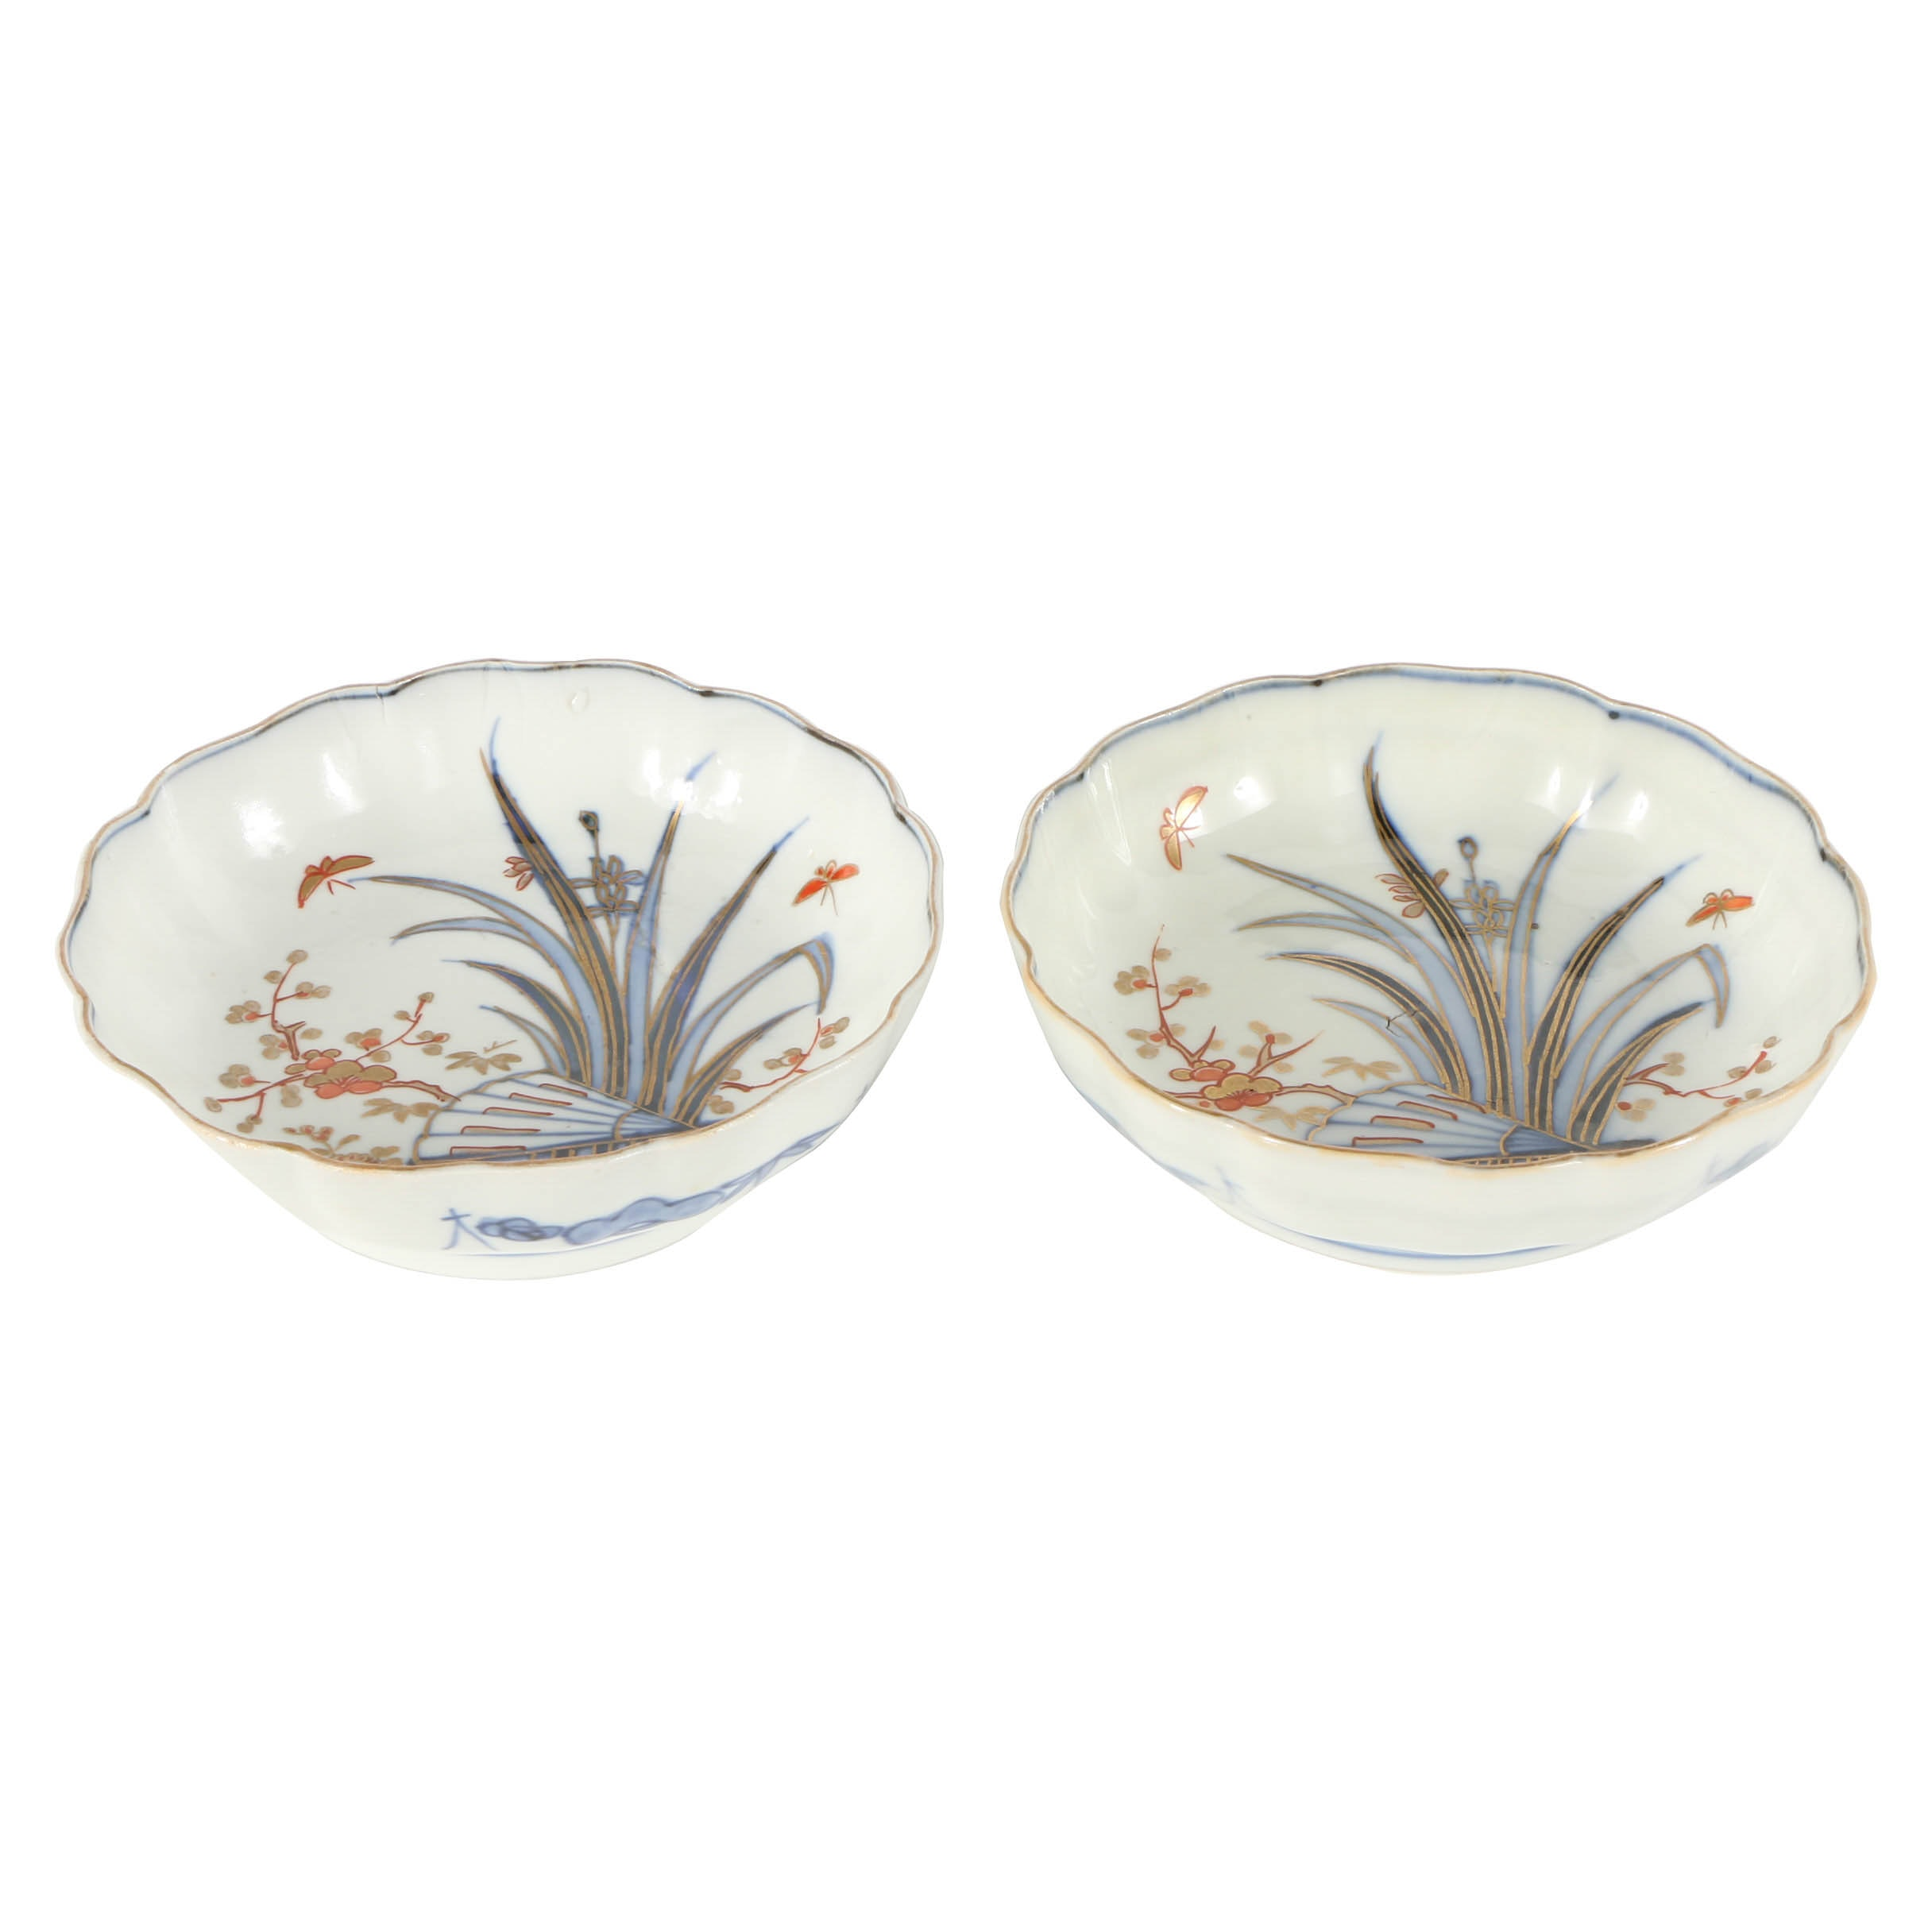 Pair of Japanese Porcelain Bowls with Gold-Toned Reed Designs